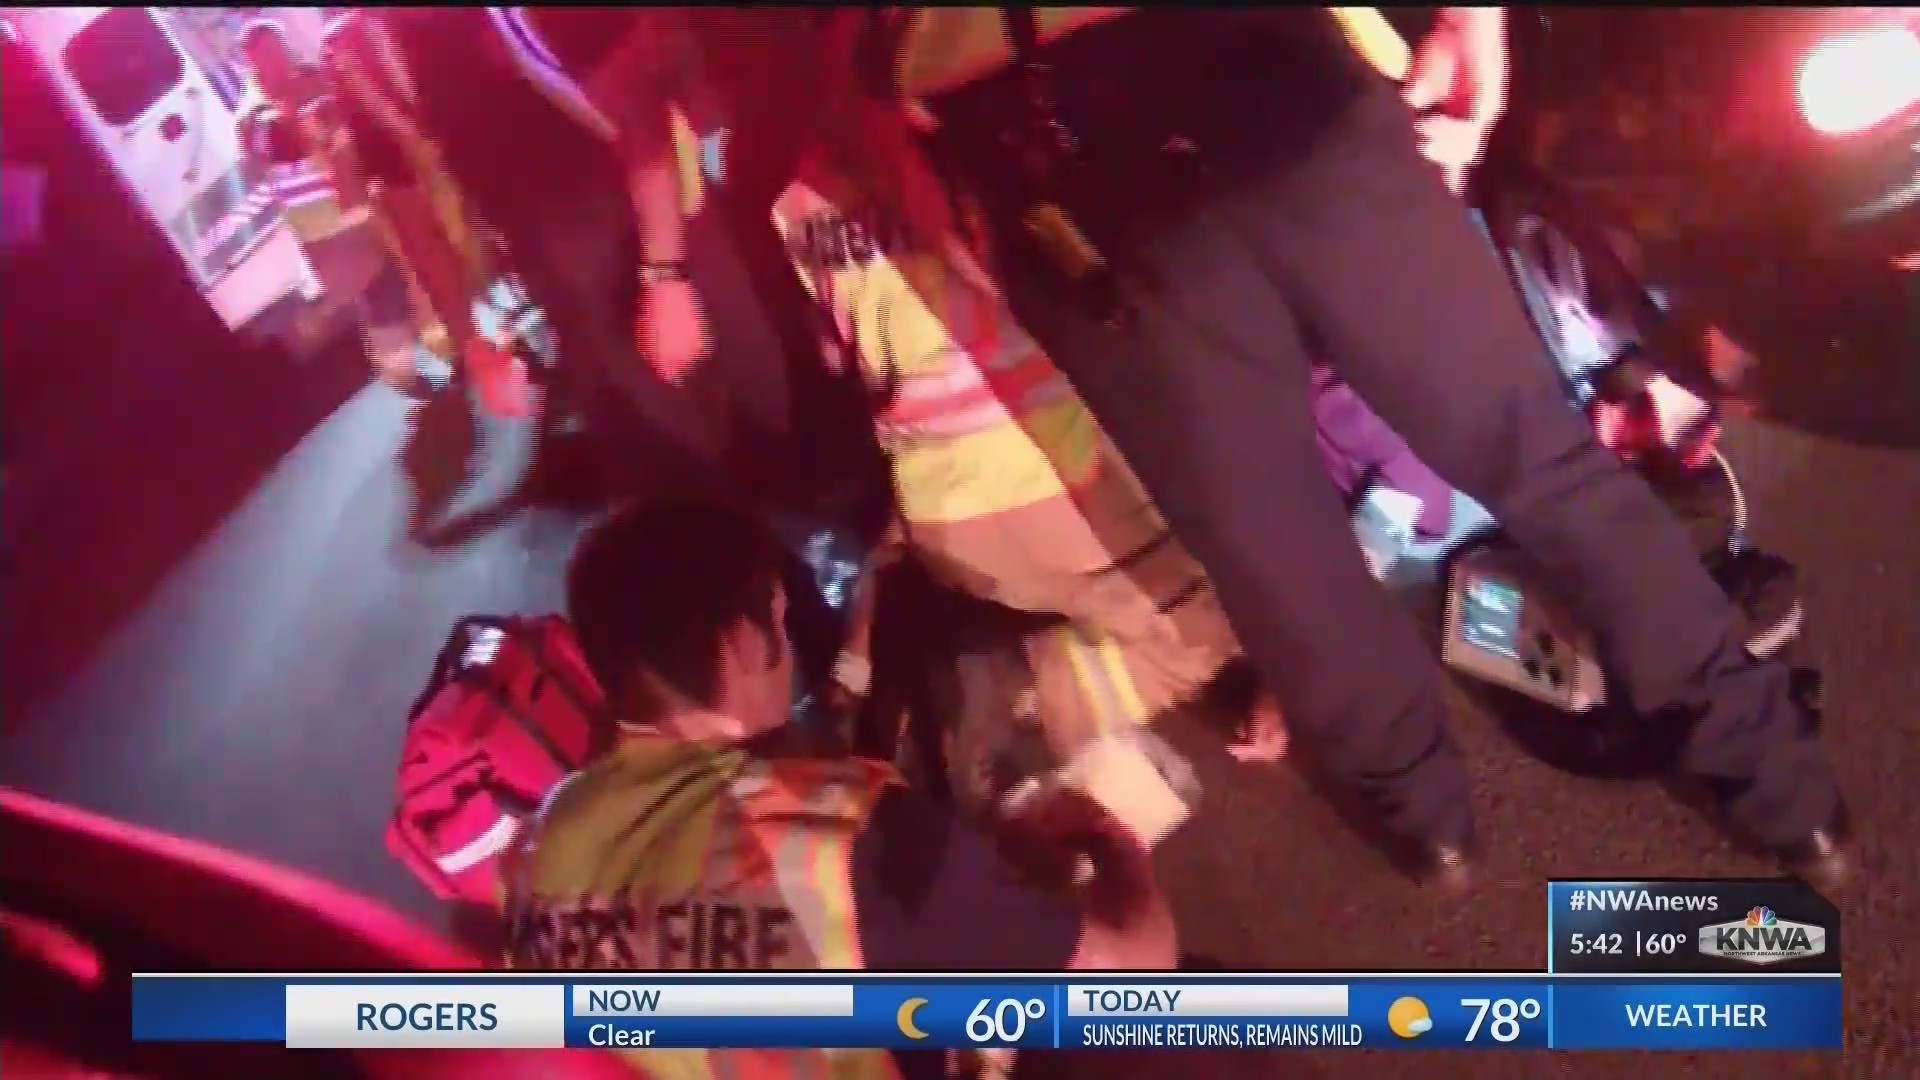 KNWA_Early_Today__Saving_Our_Firefighter_0_20190515111111-60106293